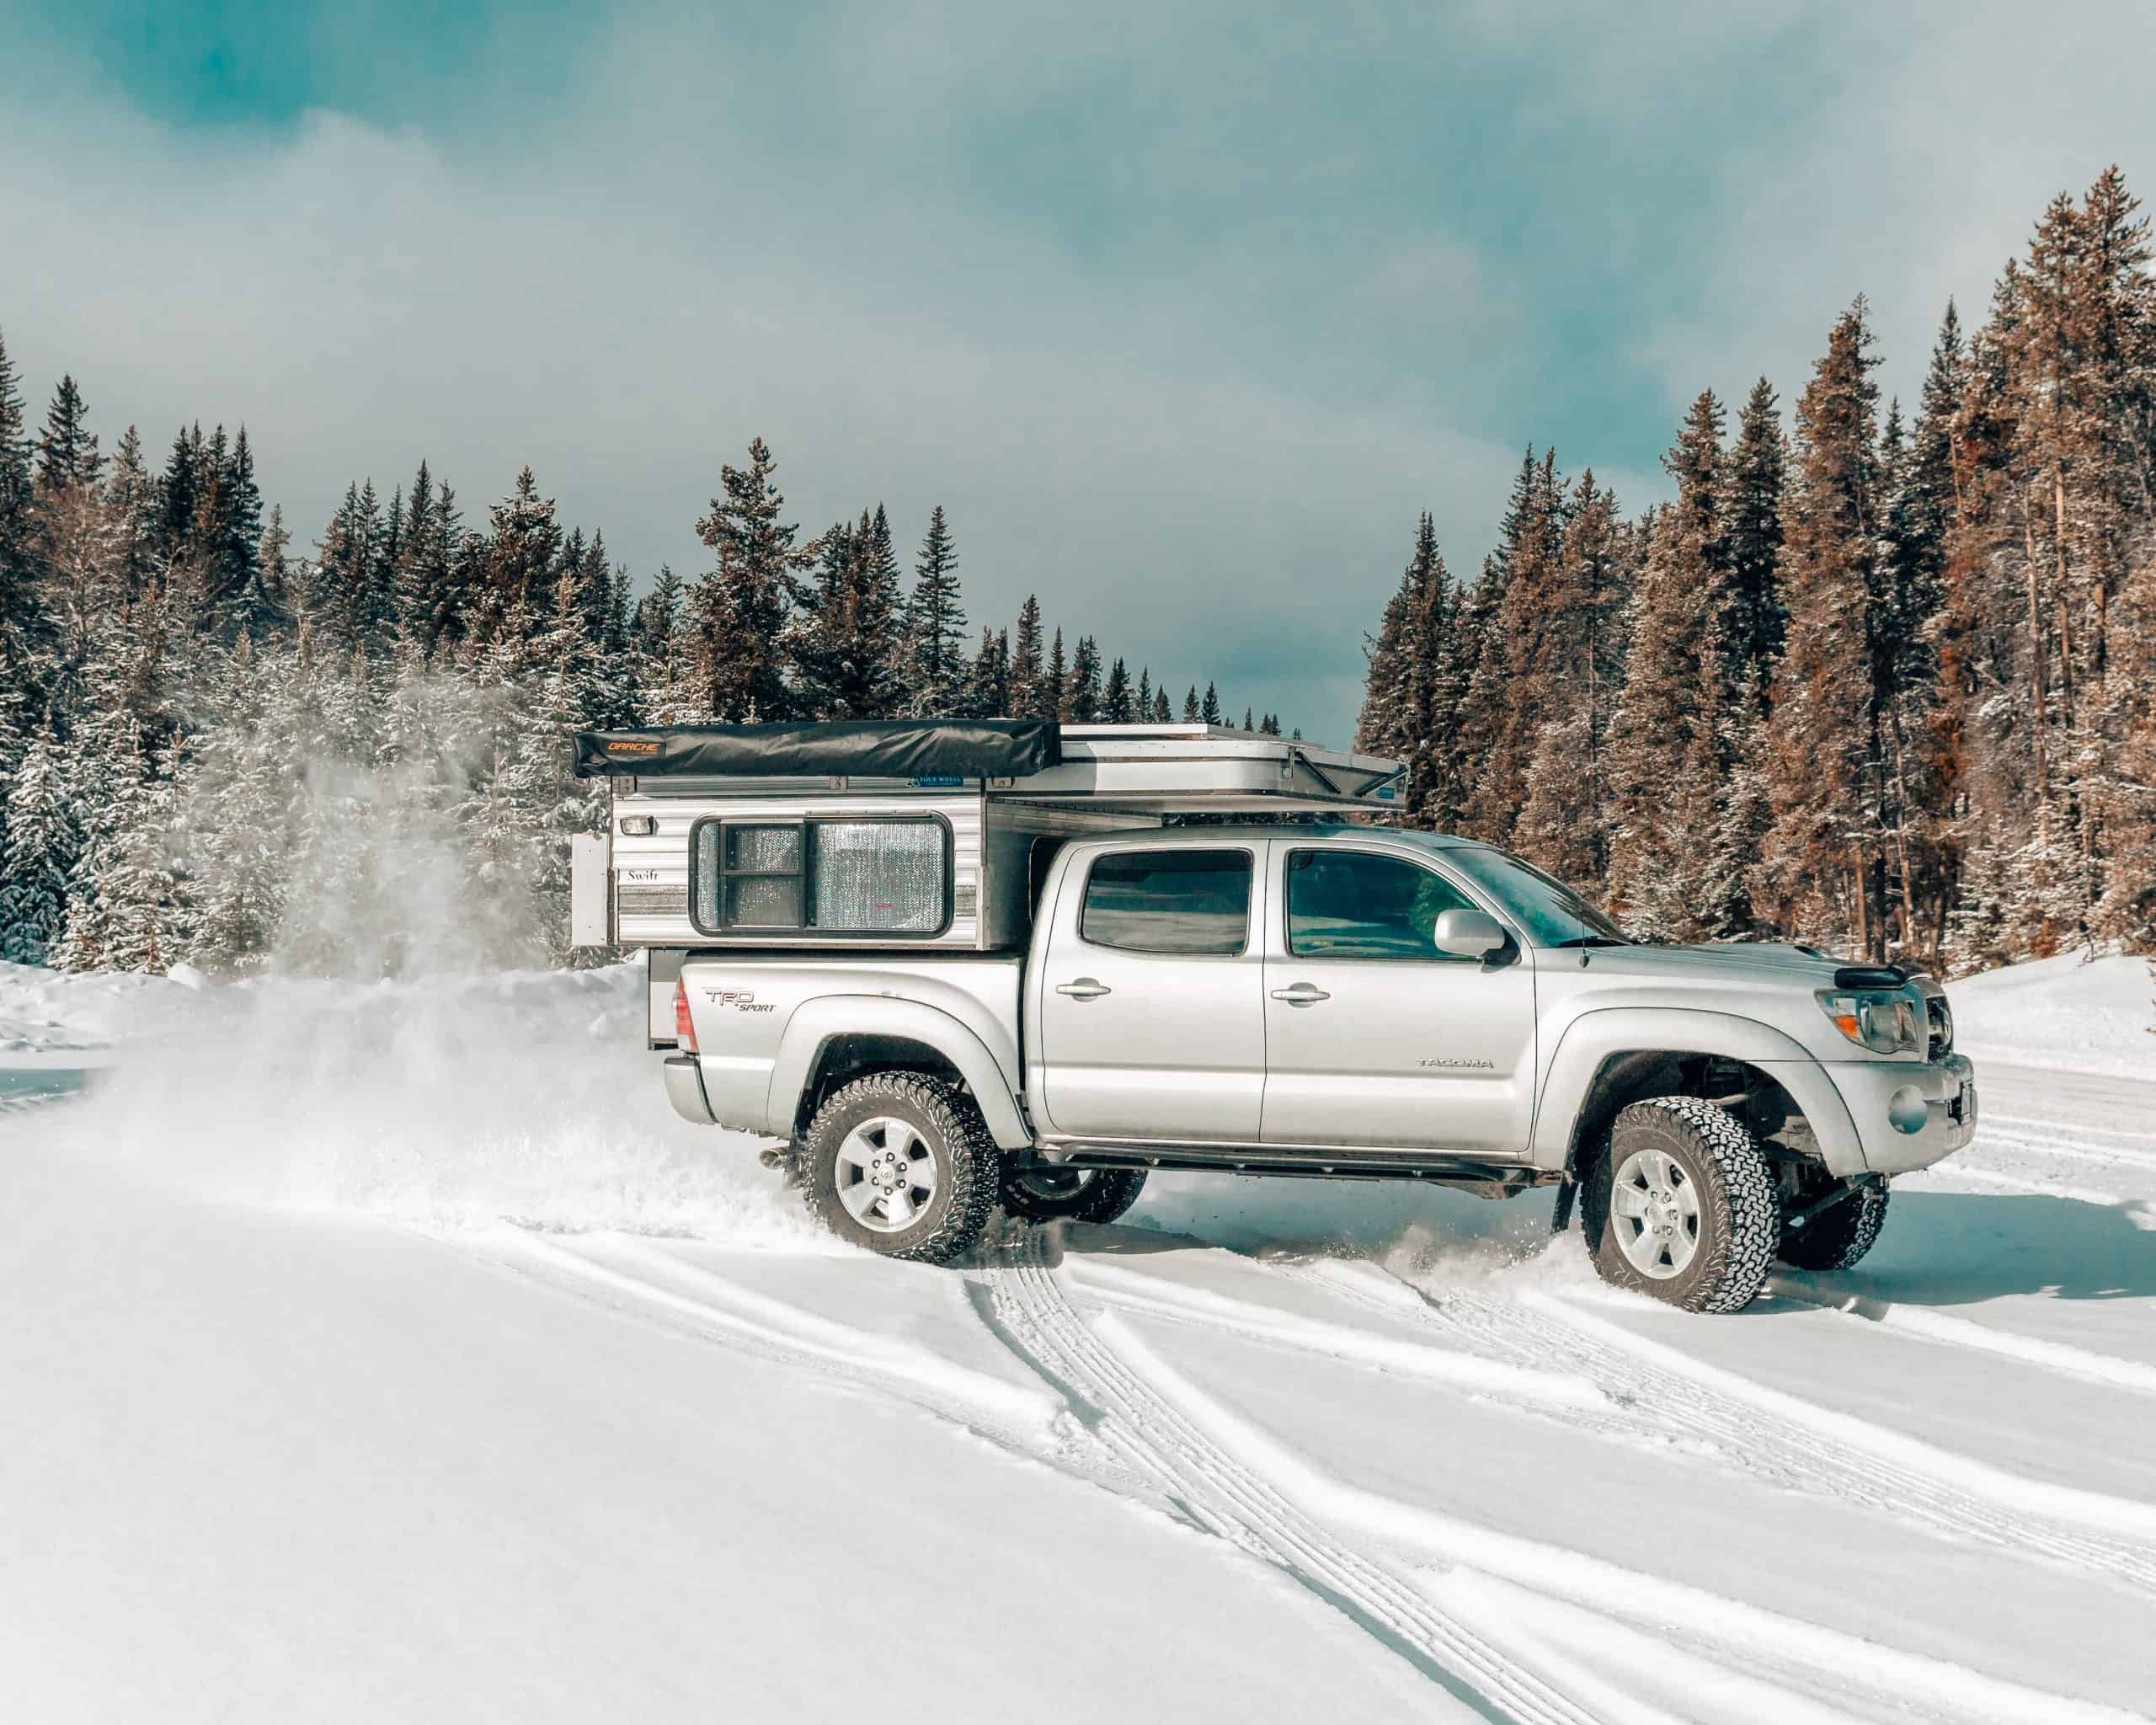 Toyota Tacoma and Four Wheel Camper Swift Model Drifting in the Snow